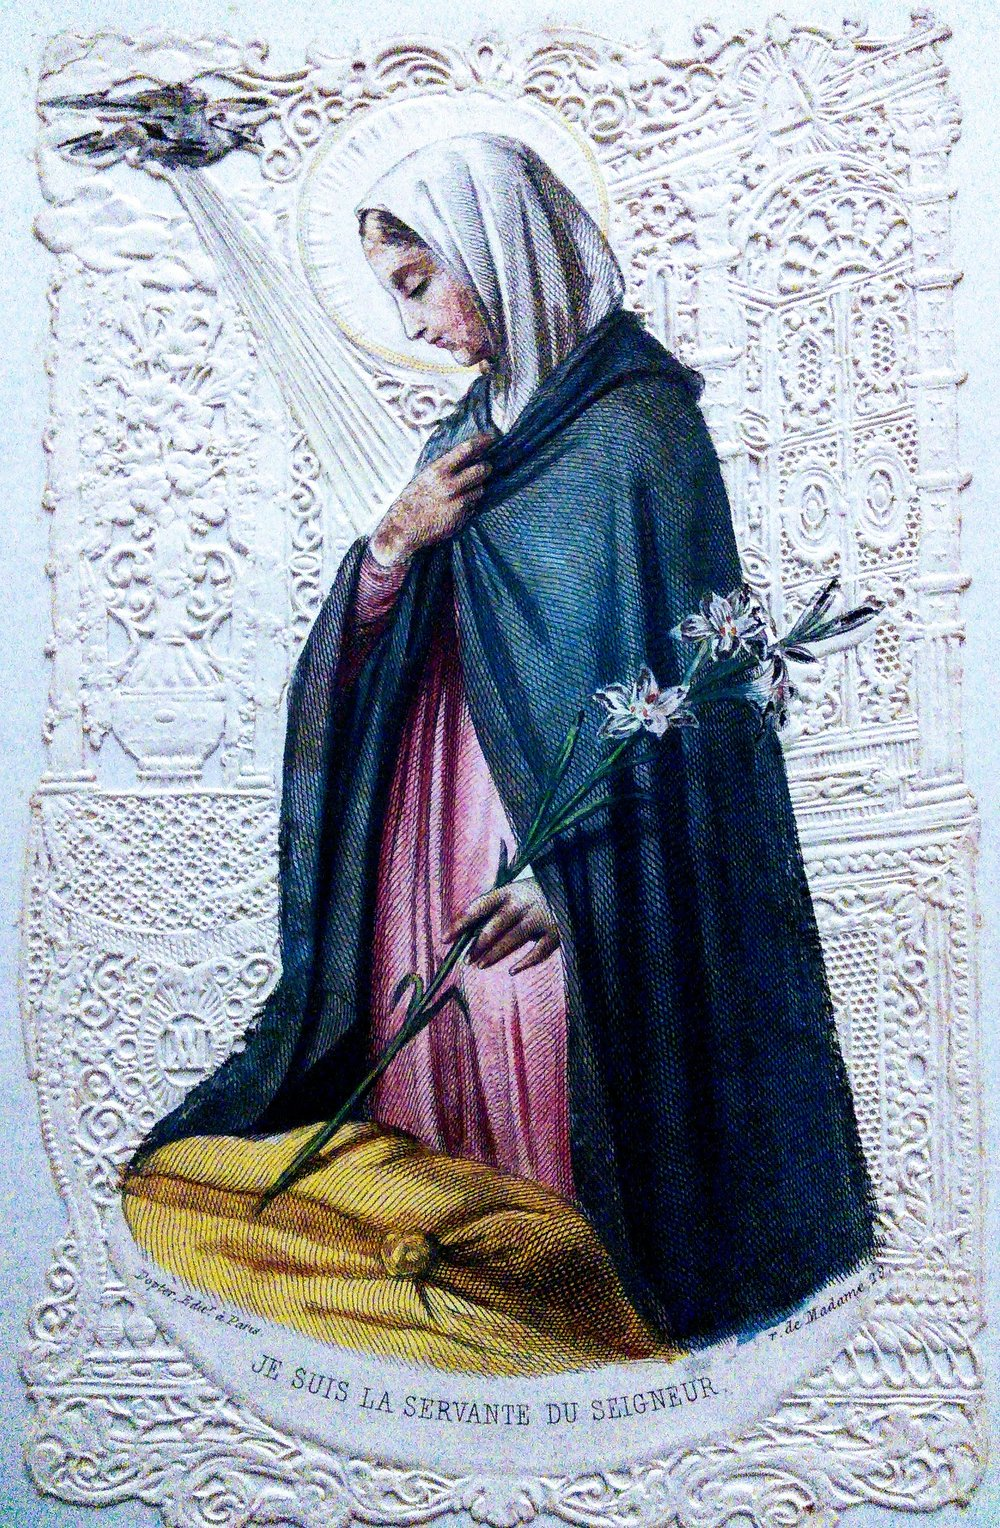 Lace prayer cards were very popular in nineteenth-century France, and beautifully made, and, like this one in Margaret Coulston's journal, hand-coloured. 'I am the servant of the Lord', the quotation reads.